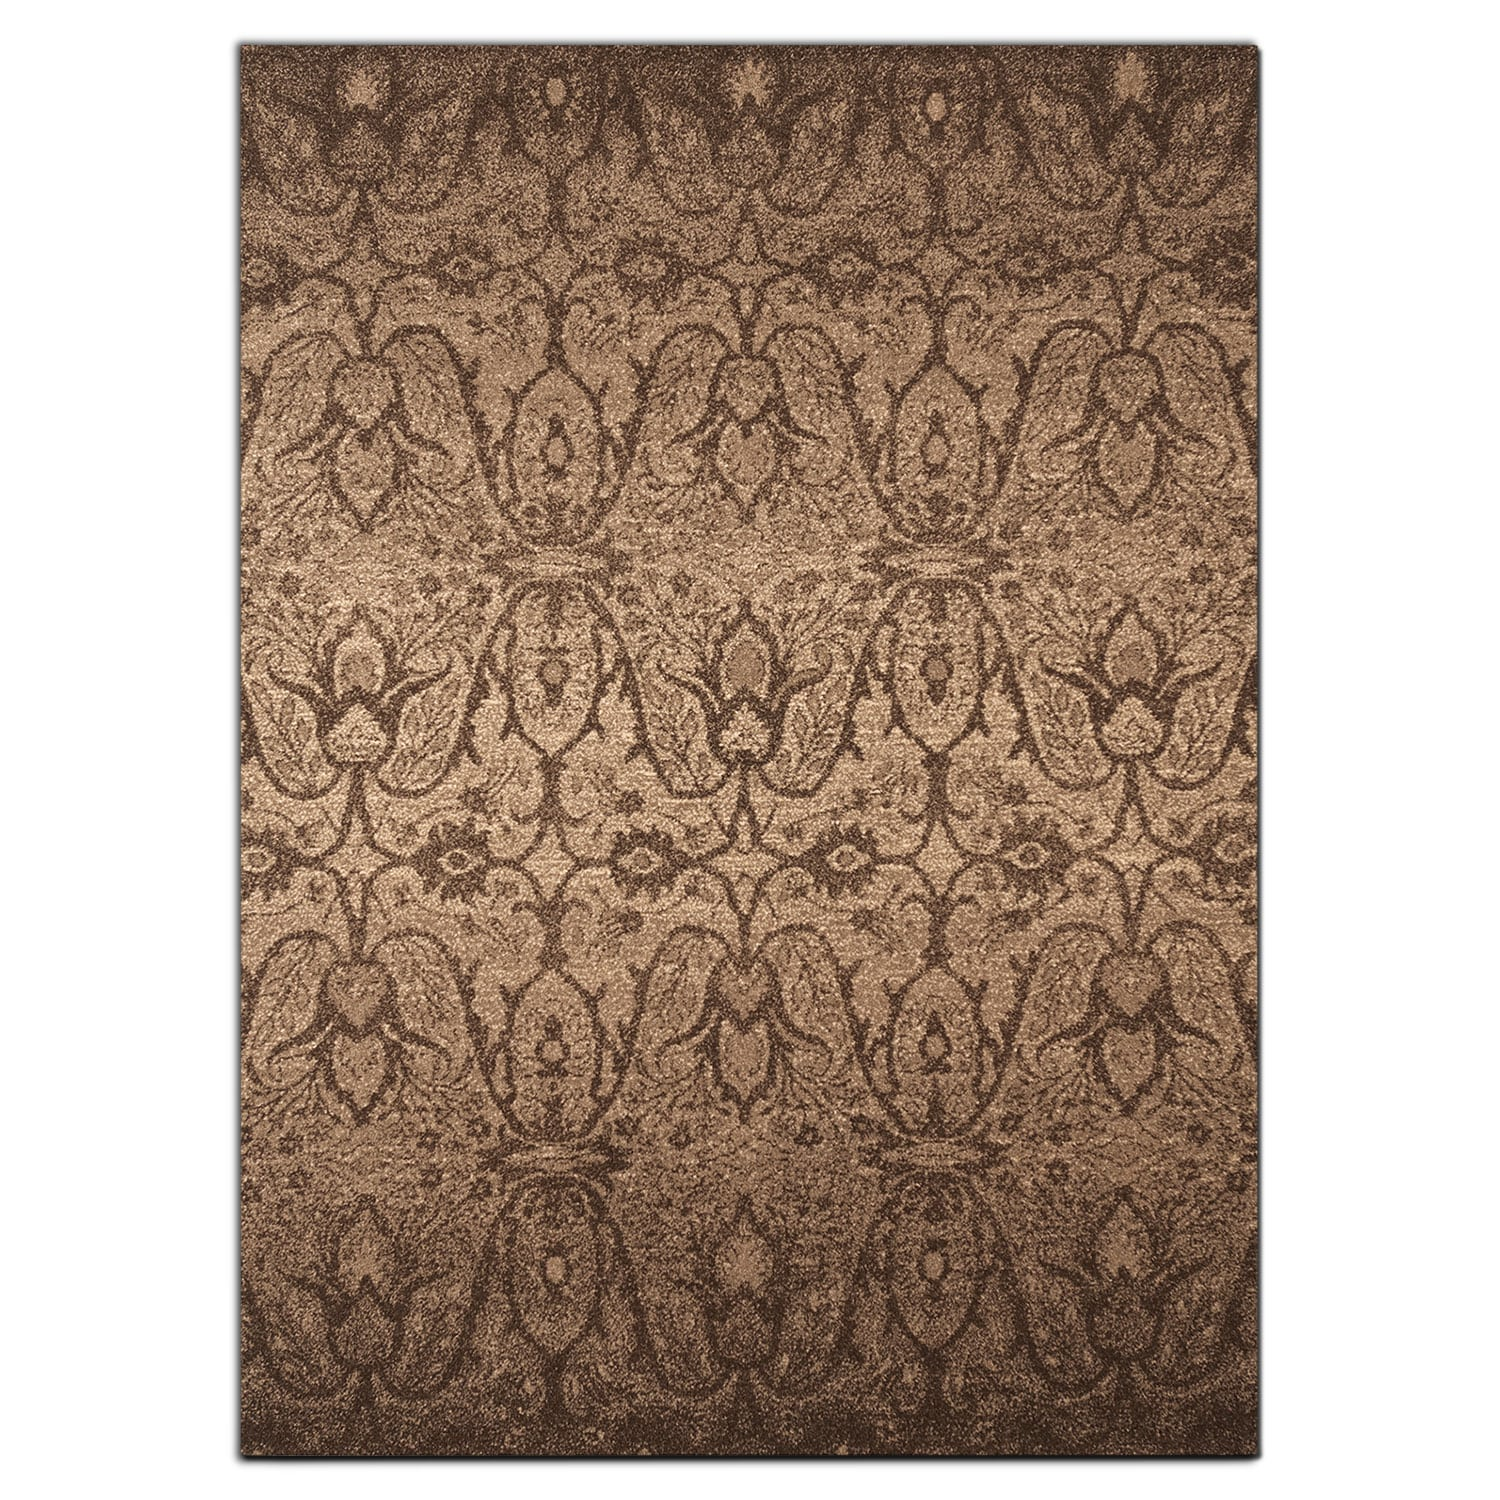 Rugs - Chelsea 8' x 10' Area Rug - Chocolate